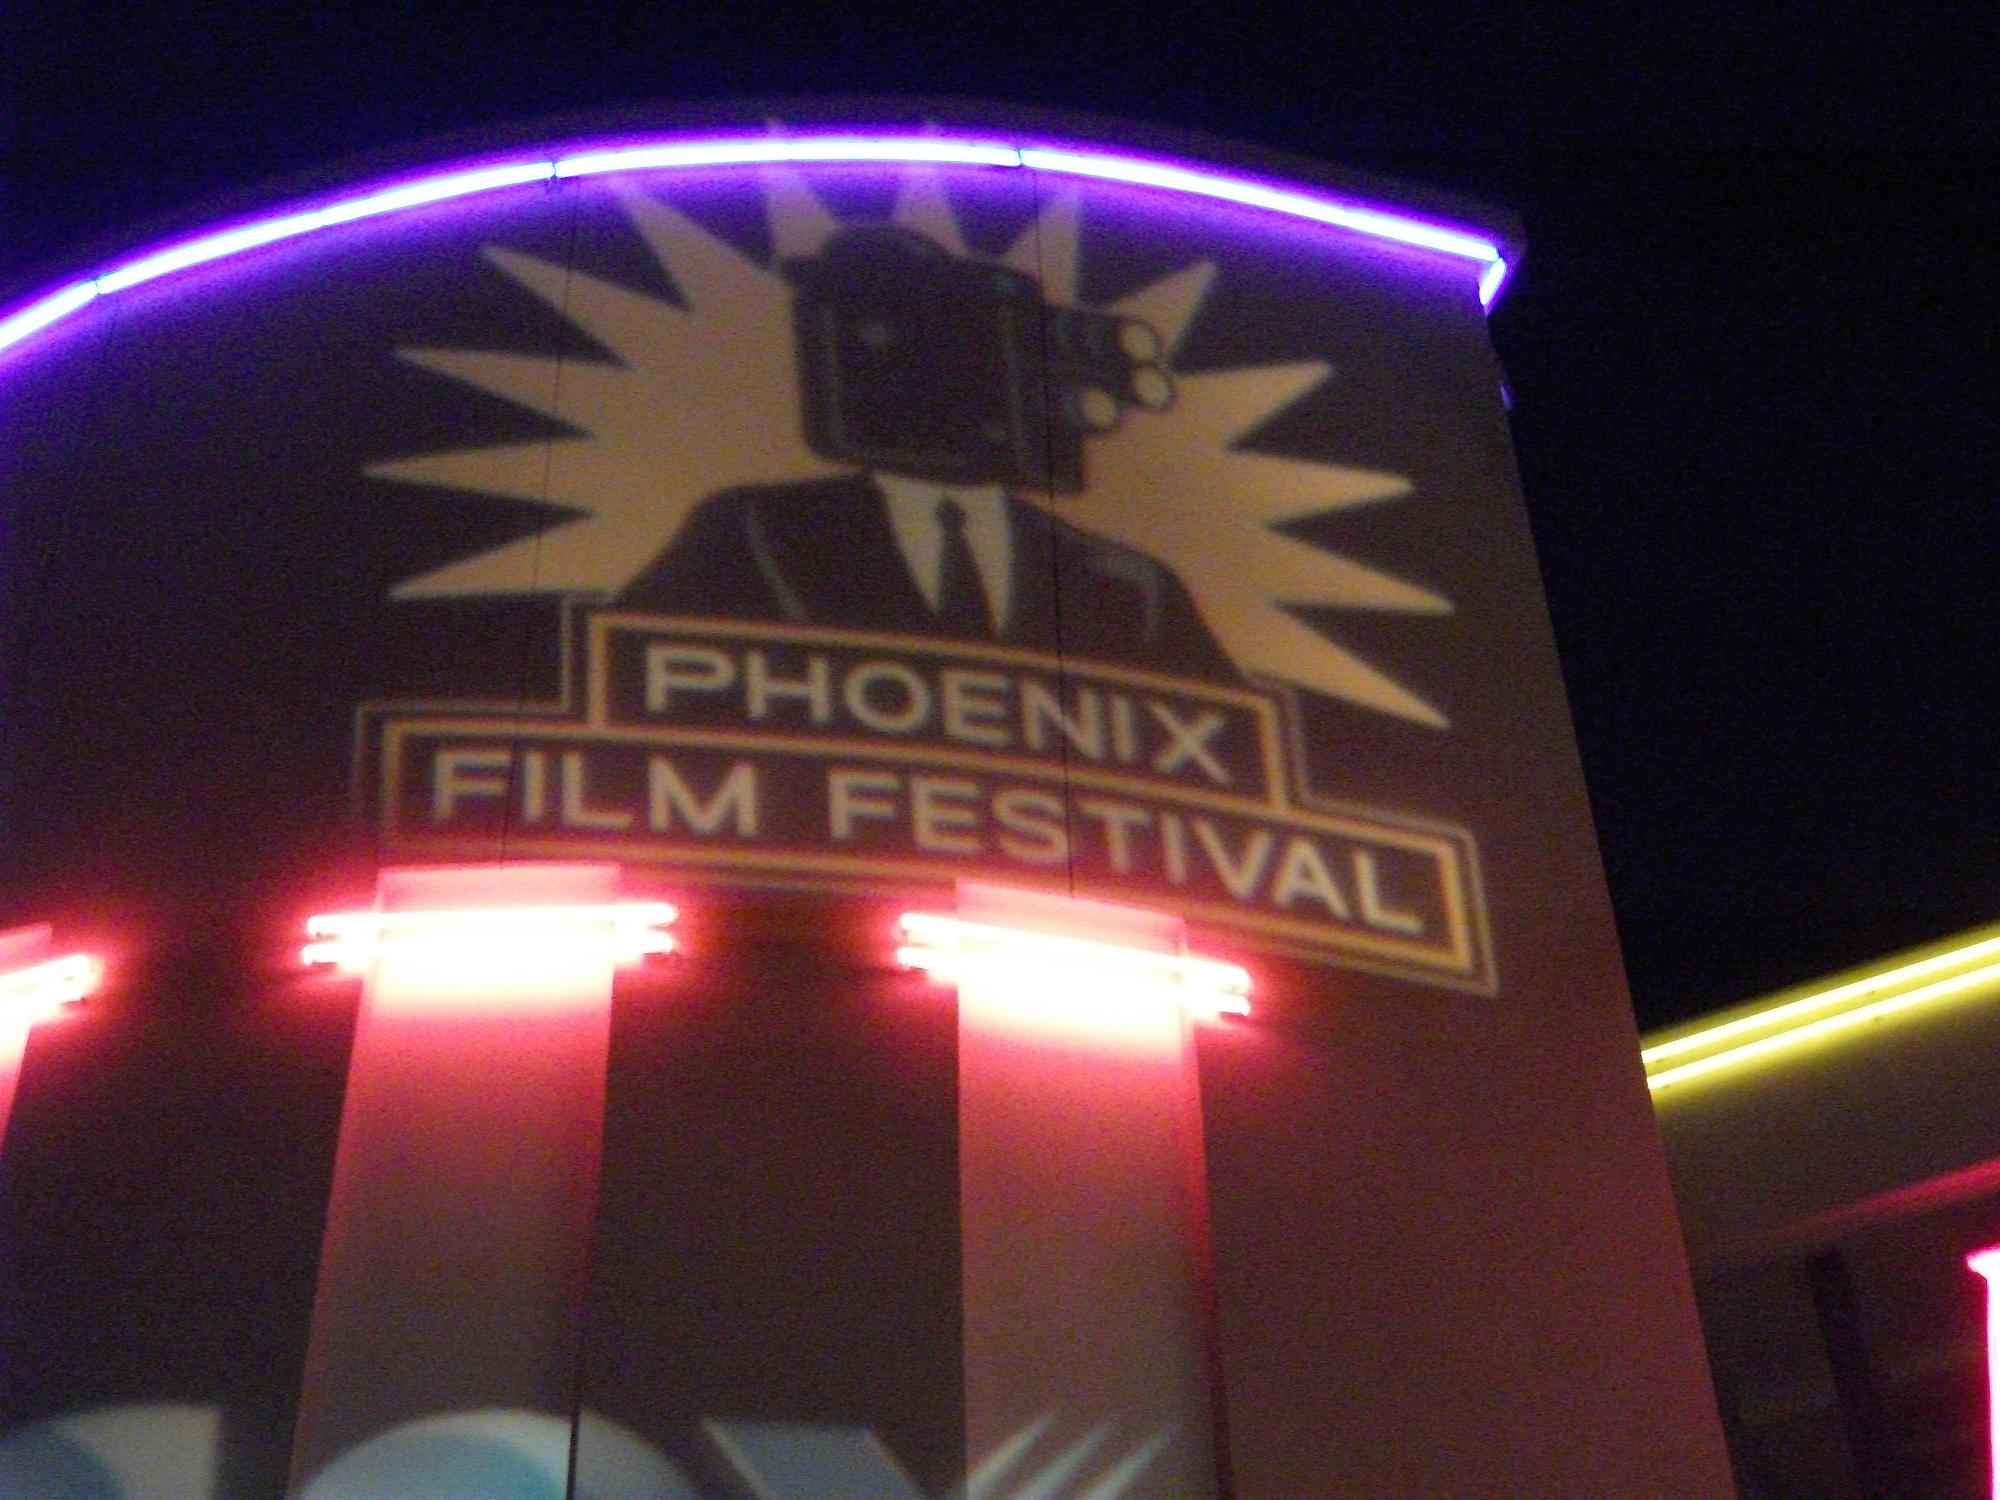 The 10th Annual Phoenix Film Festival kicked off April 8th at the Harkins Theater